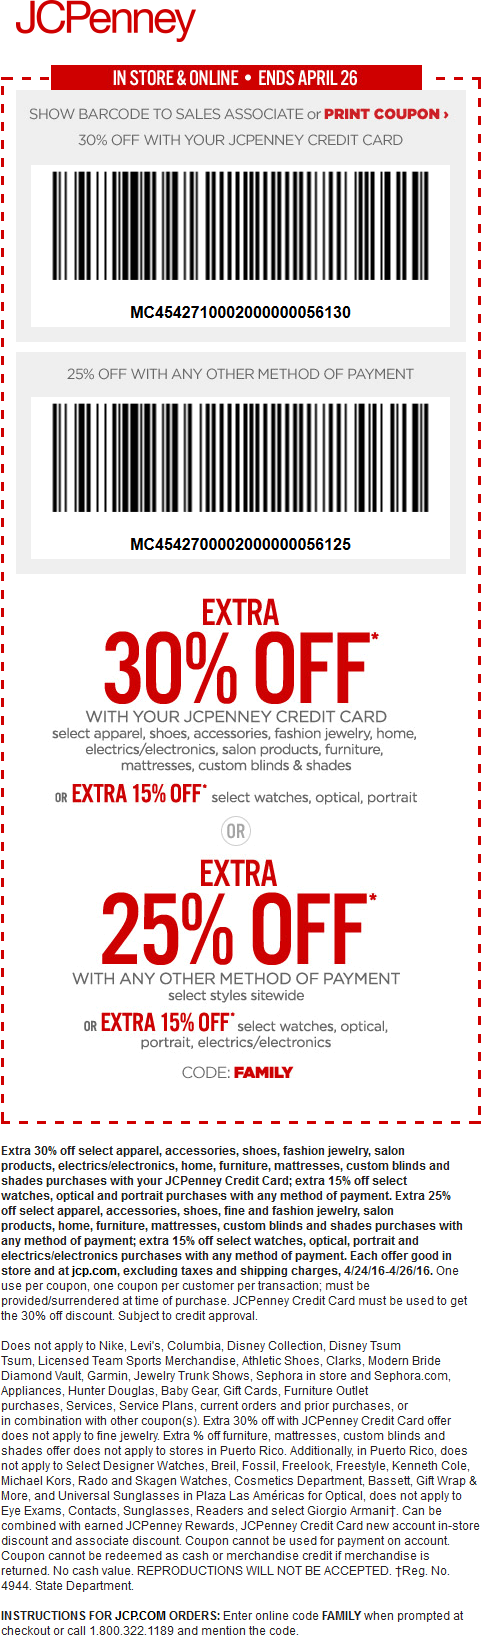 JCPenney Coupon February 2019 Extra 25% off at JCPenney, or online via promo code FAMILY